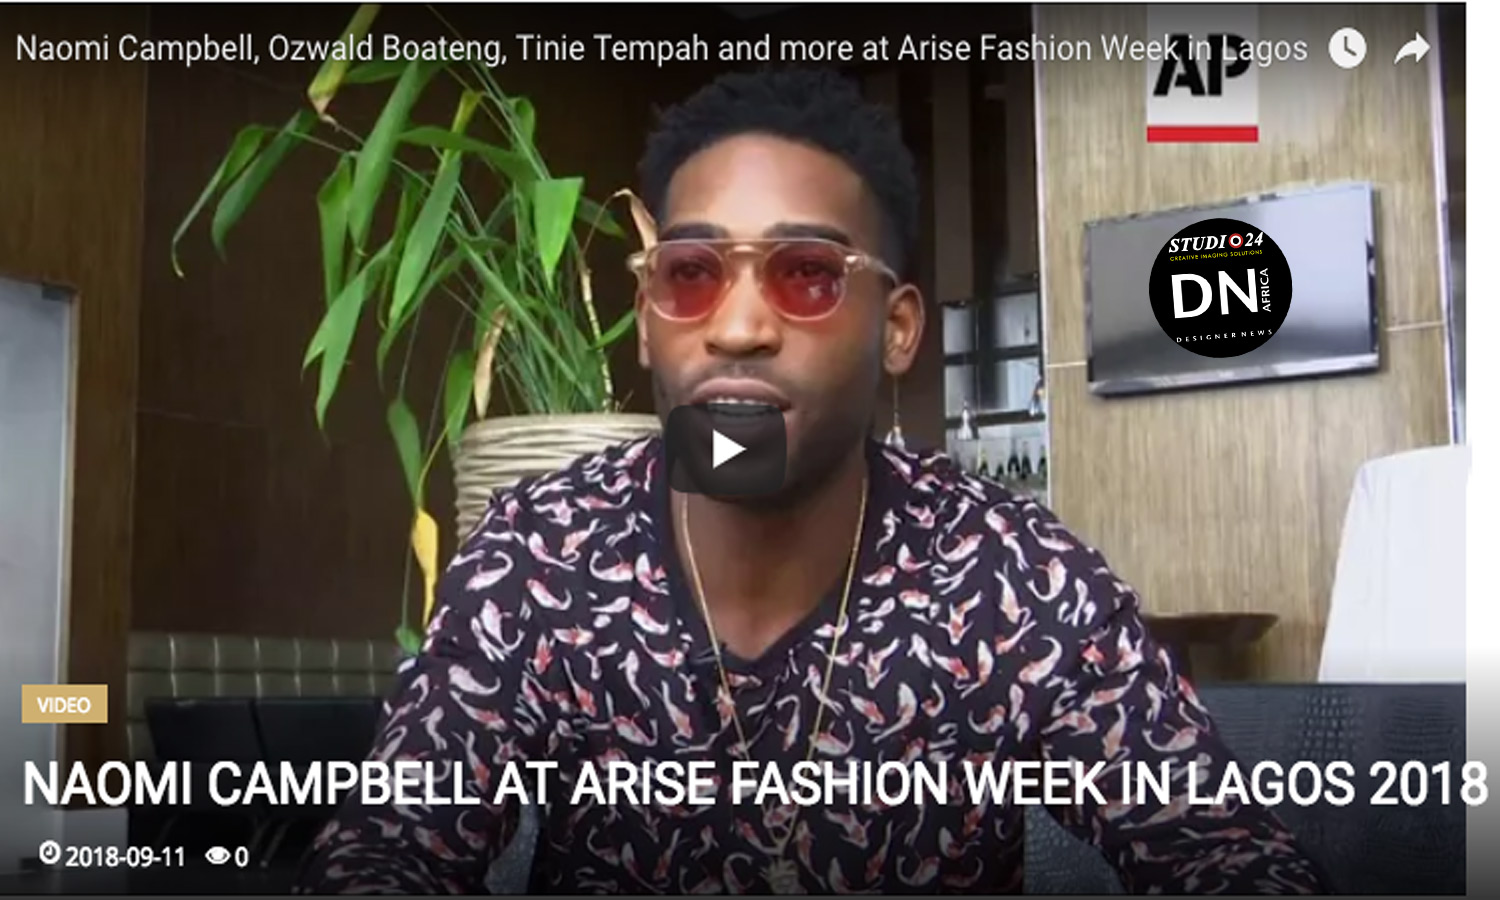 AFRICAN FASHION STYLE MAGAZINE - Naomi-Campbell-at-Arise-Fashion-Week-in-Lagos-2018 -Media Partner DN MAG, DN AFRICA -STUDIO 24 NIGERIA - STUDIO 24 INTERNATIONAL